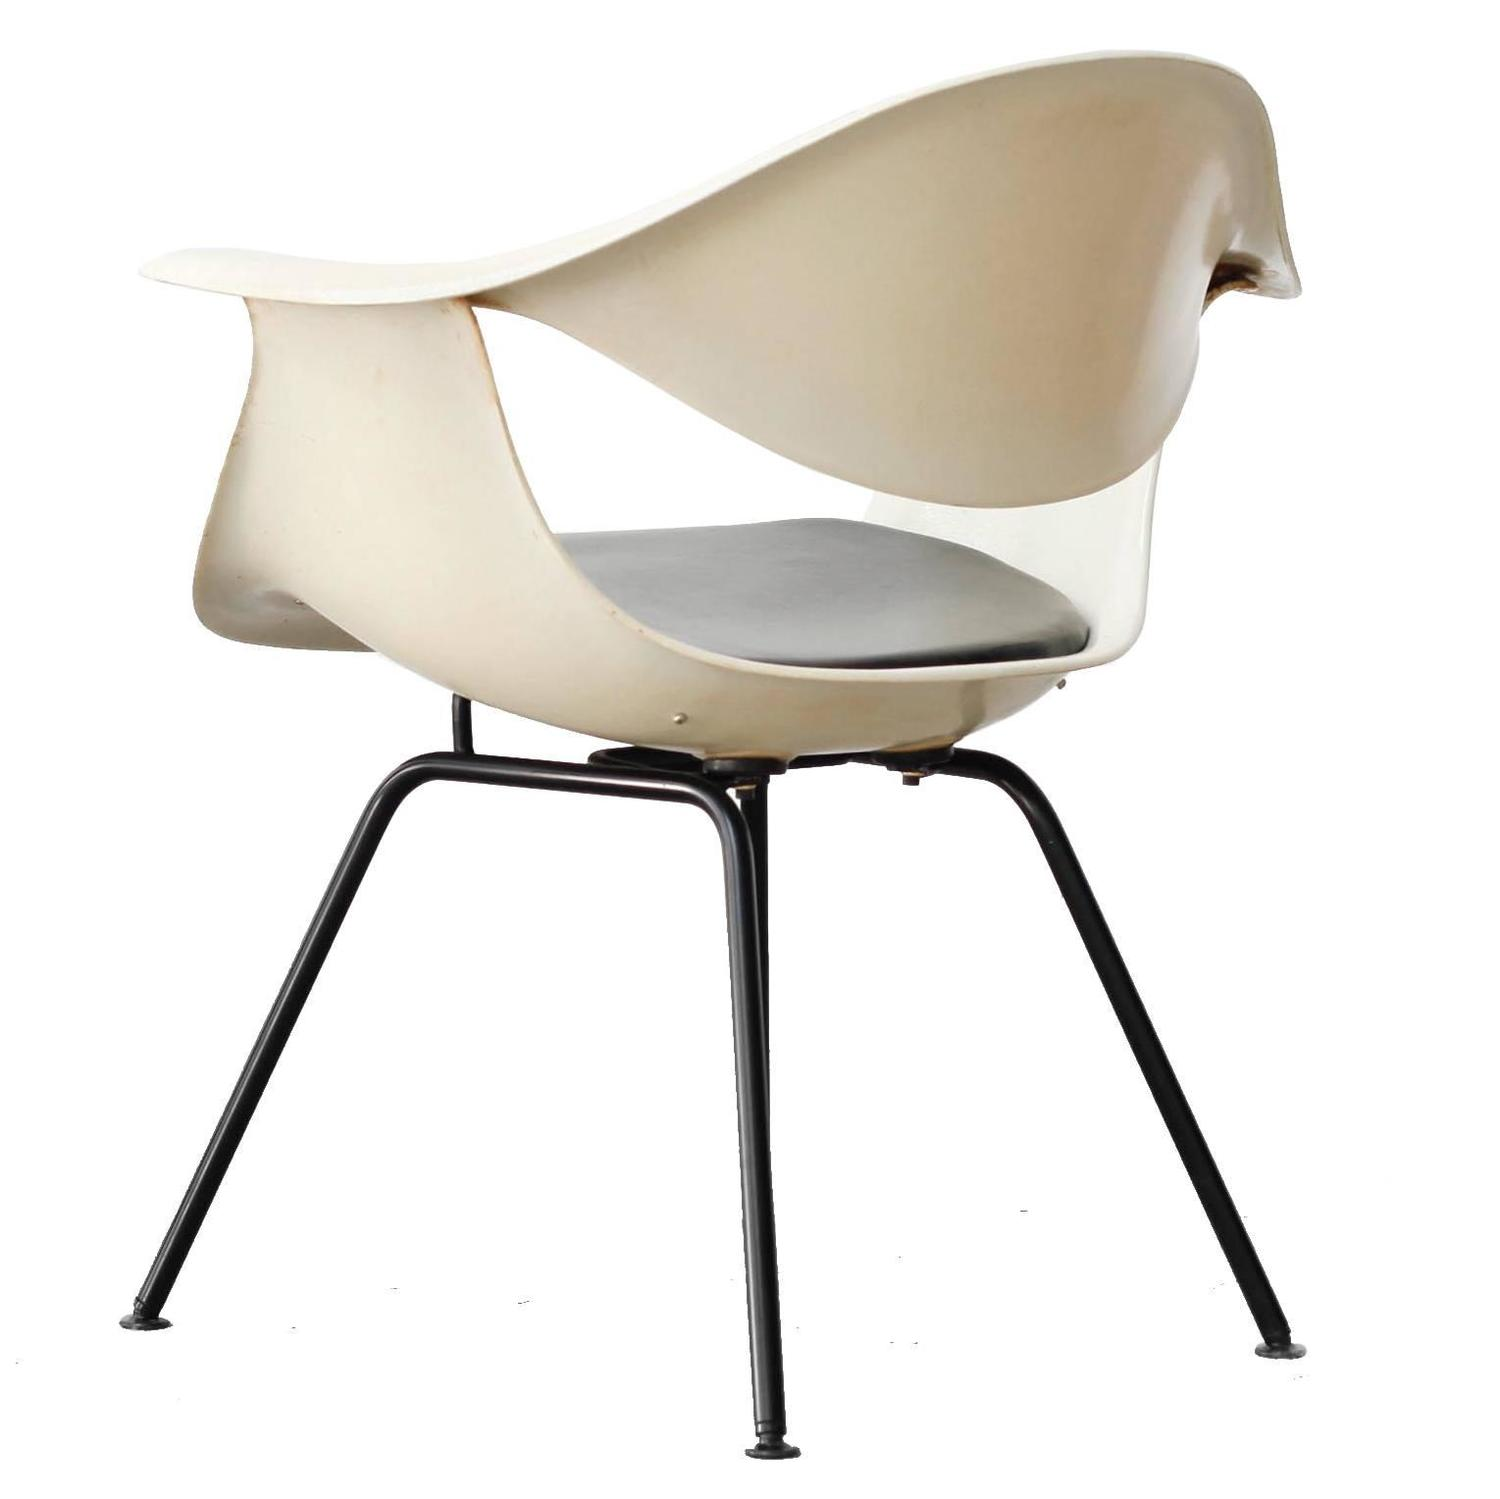 DAF Fiberglass chair by George Nelson for Herman Miller 1958 For